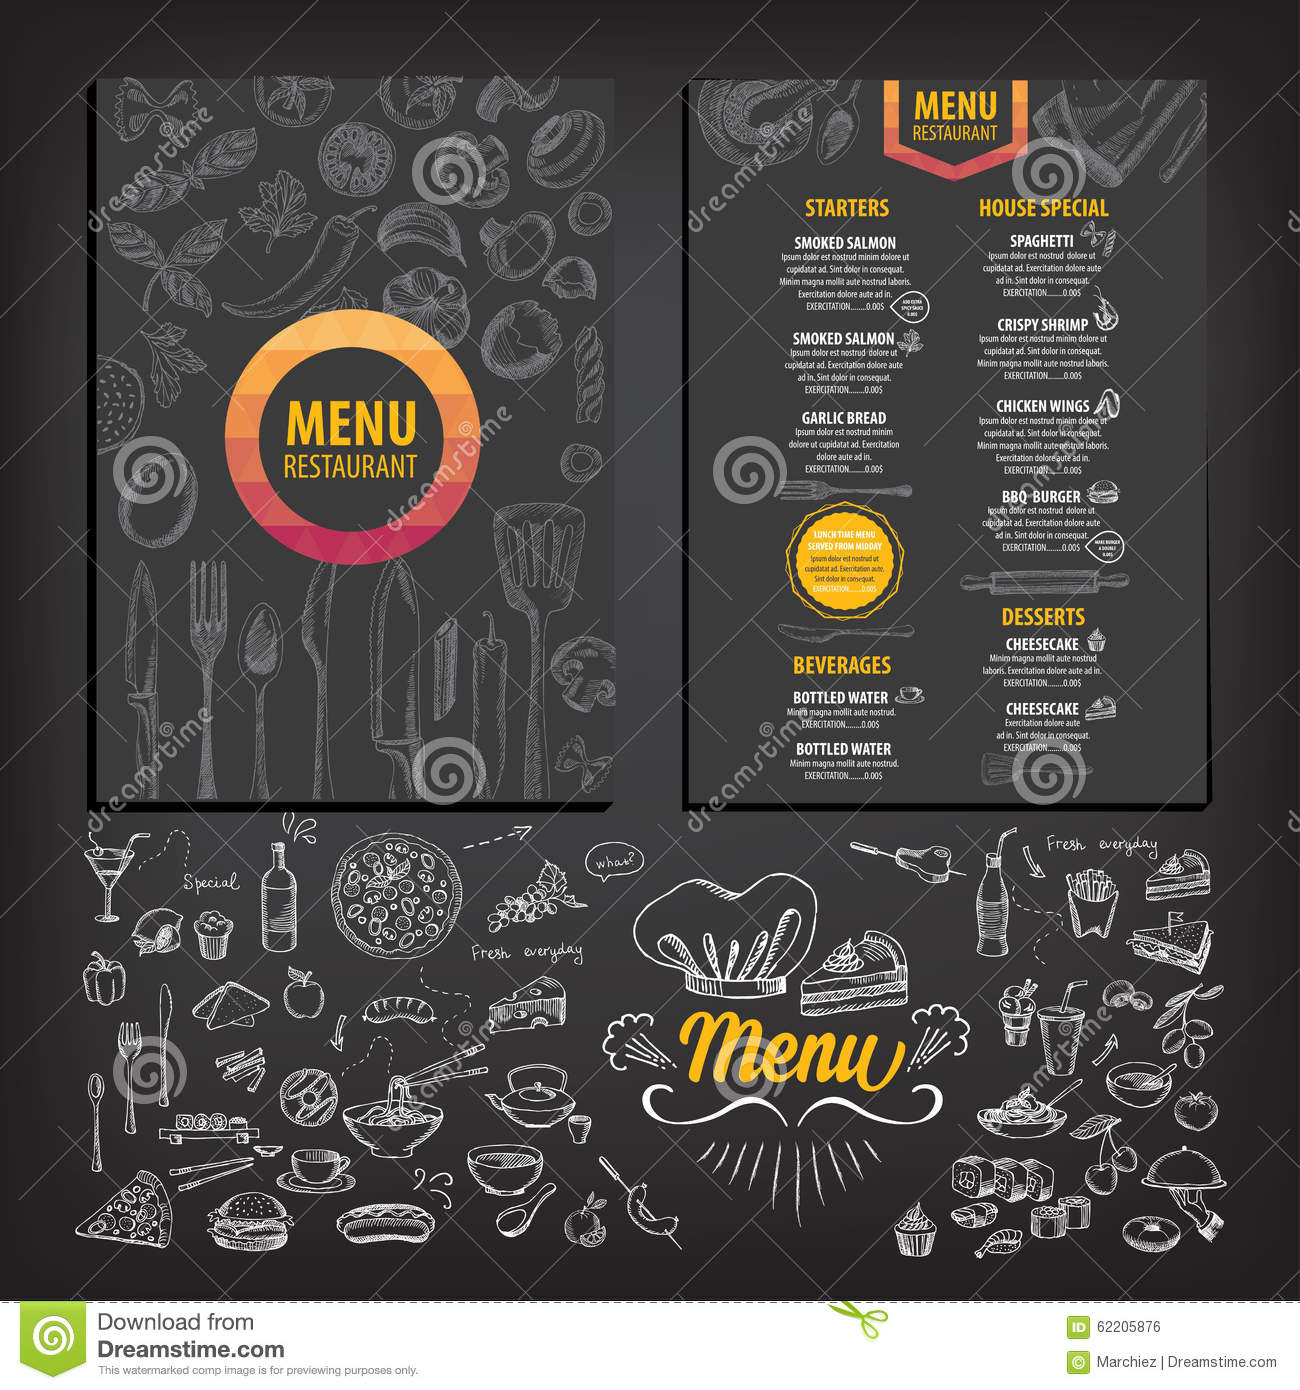 Cafe menu with hand drawn design fast food restaurant